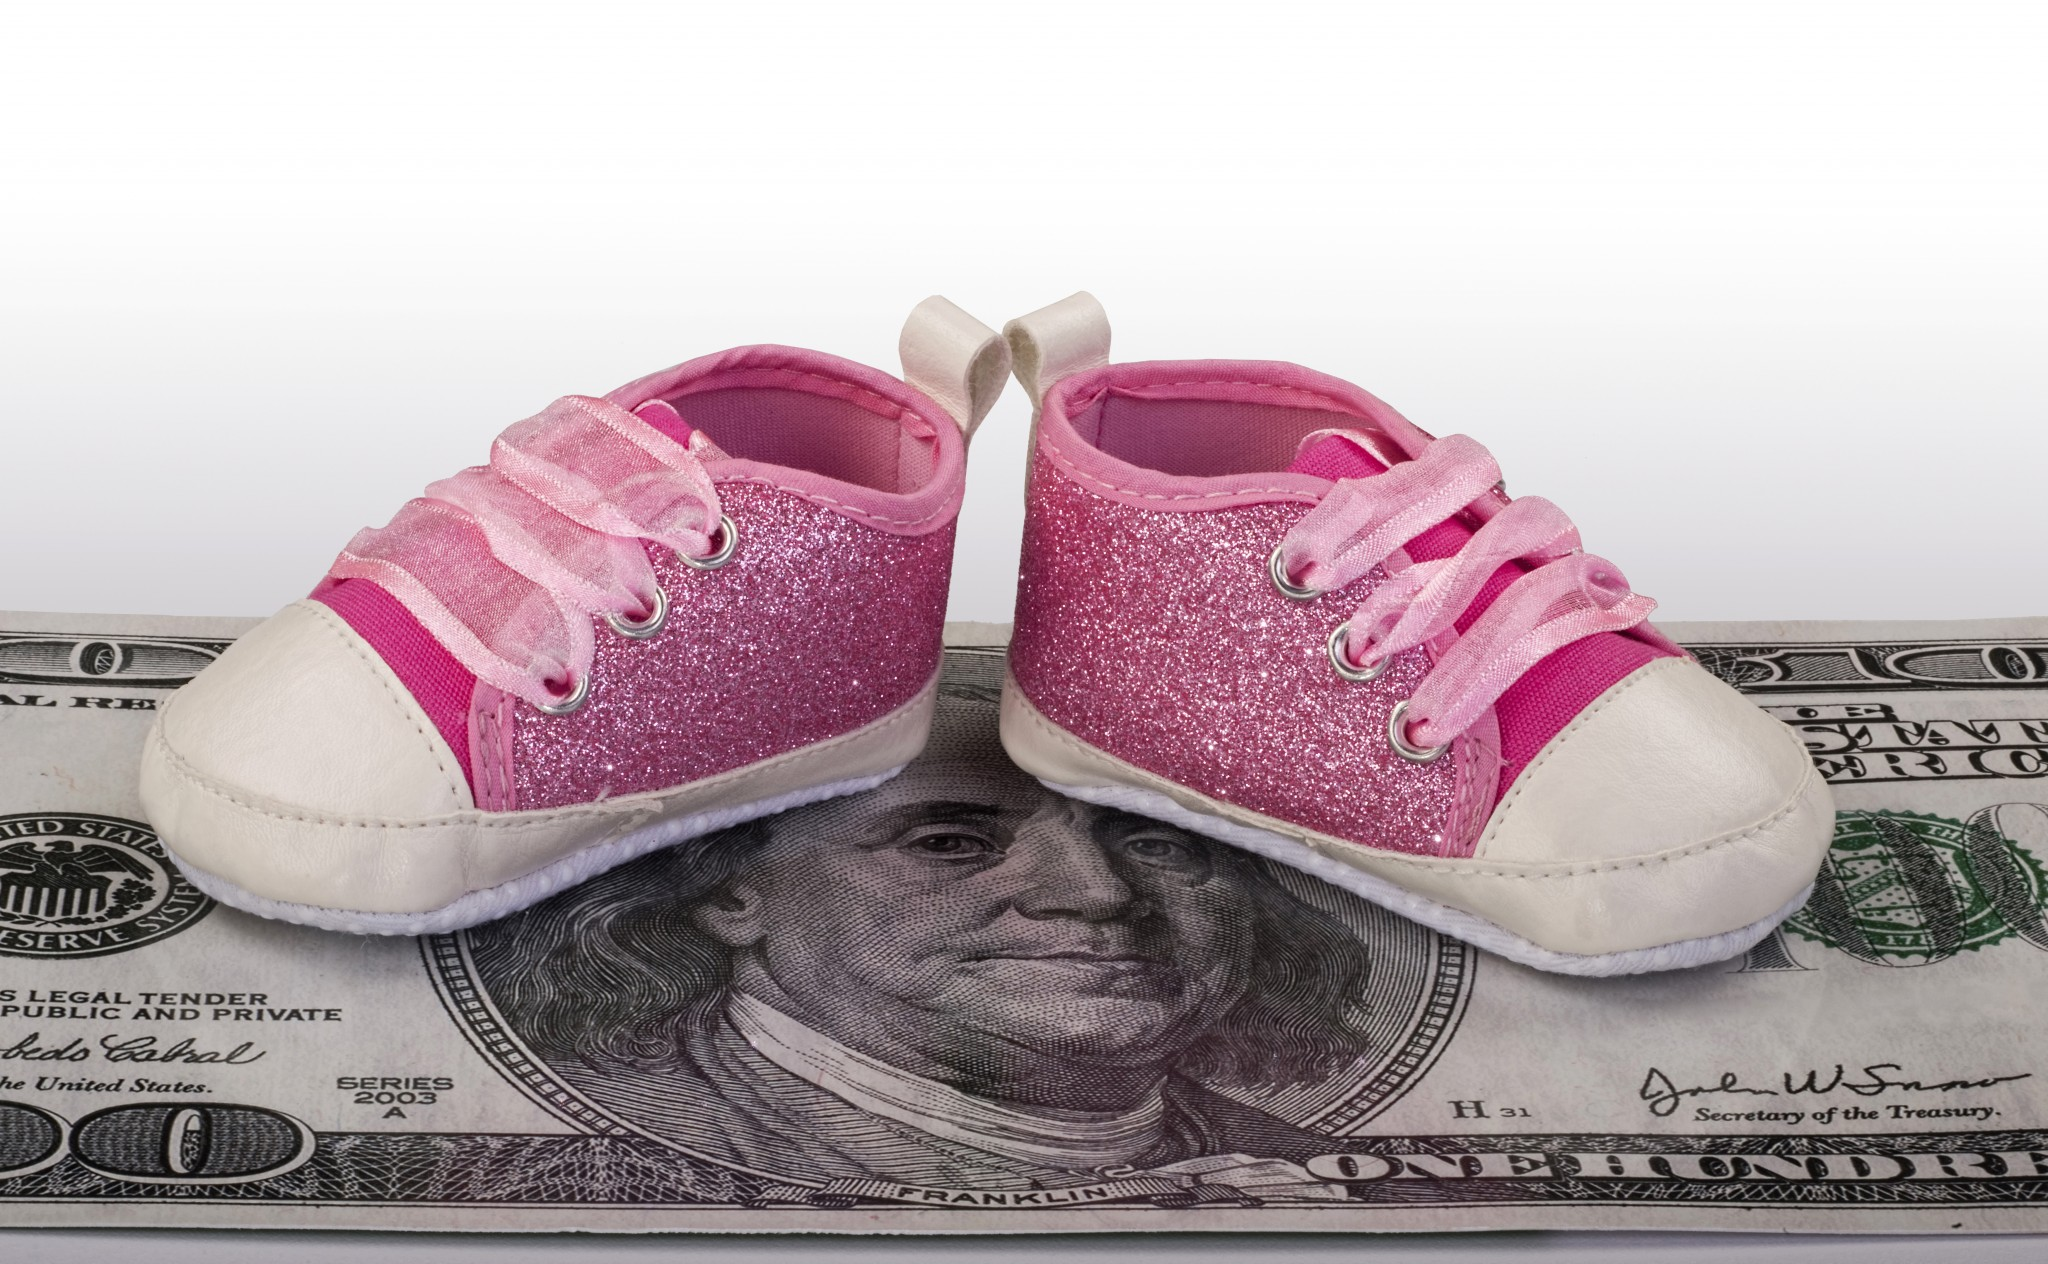 Weekly economic news roundup and working mothers